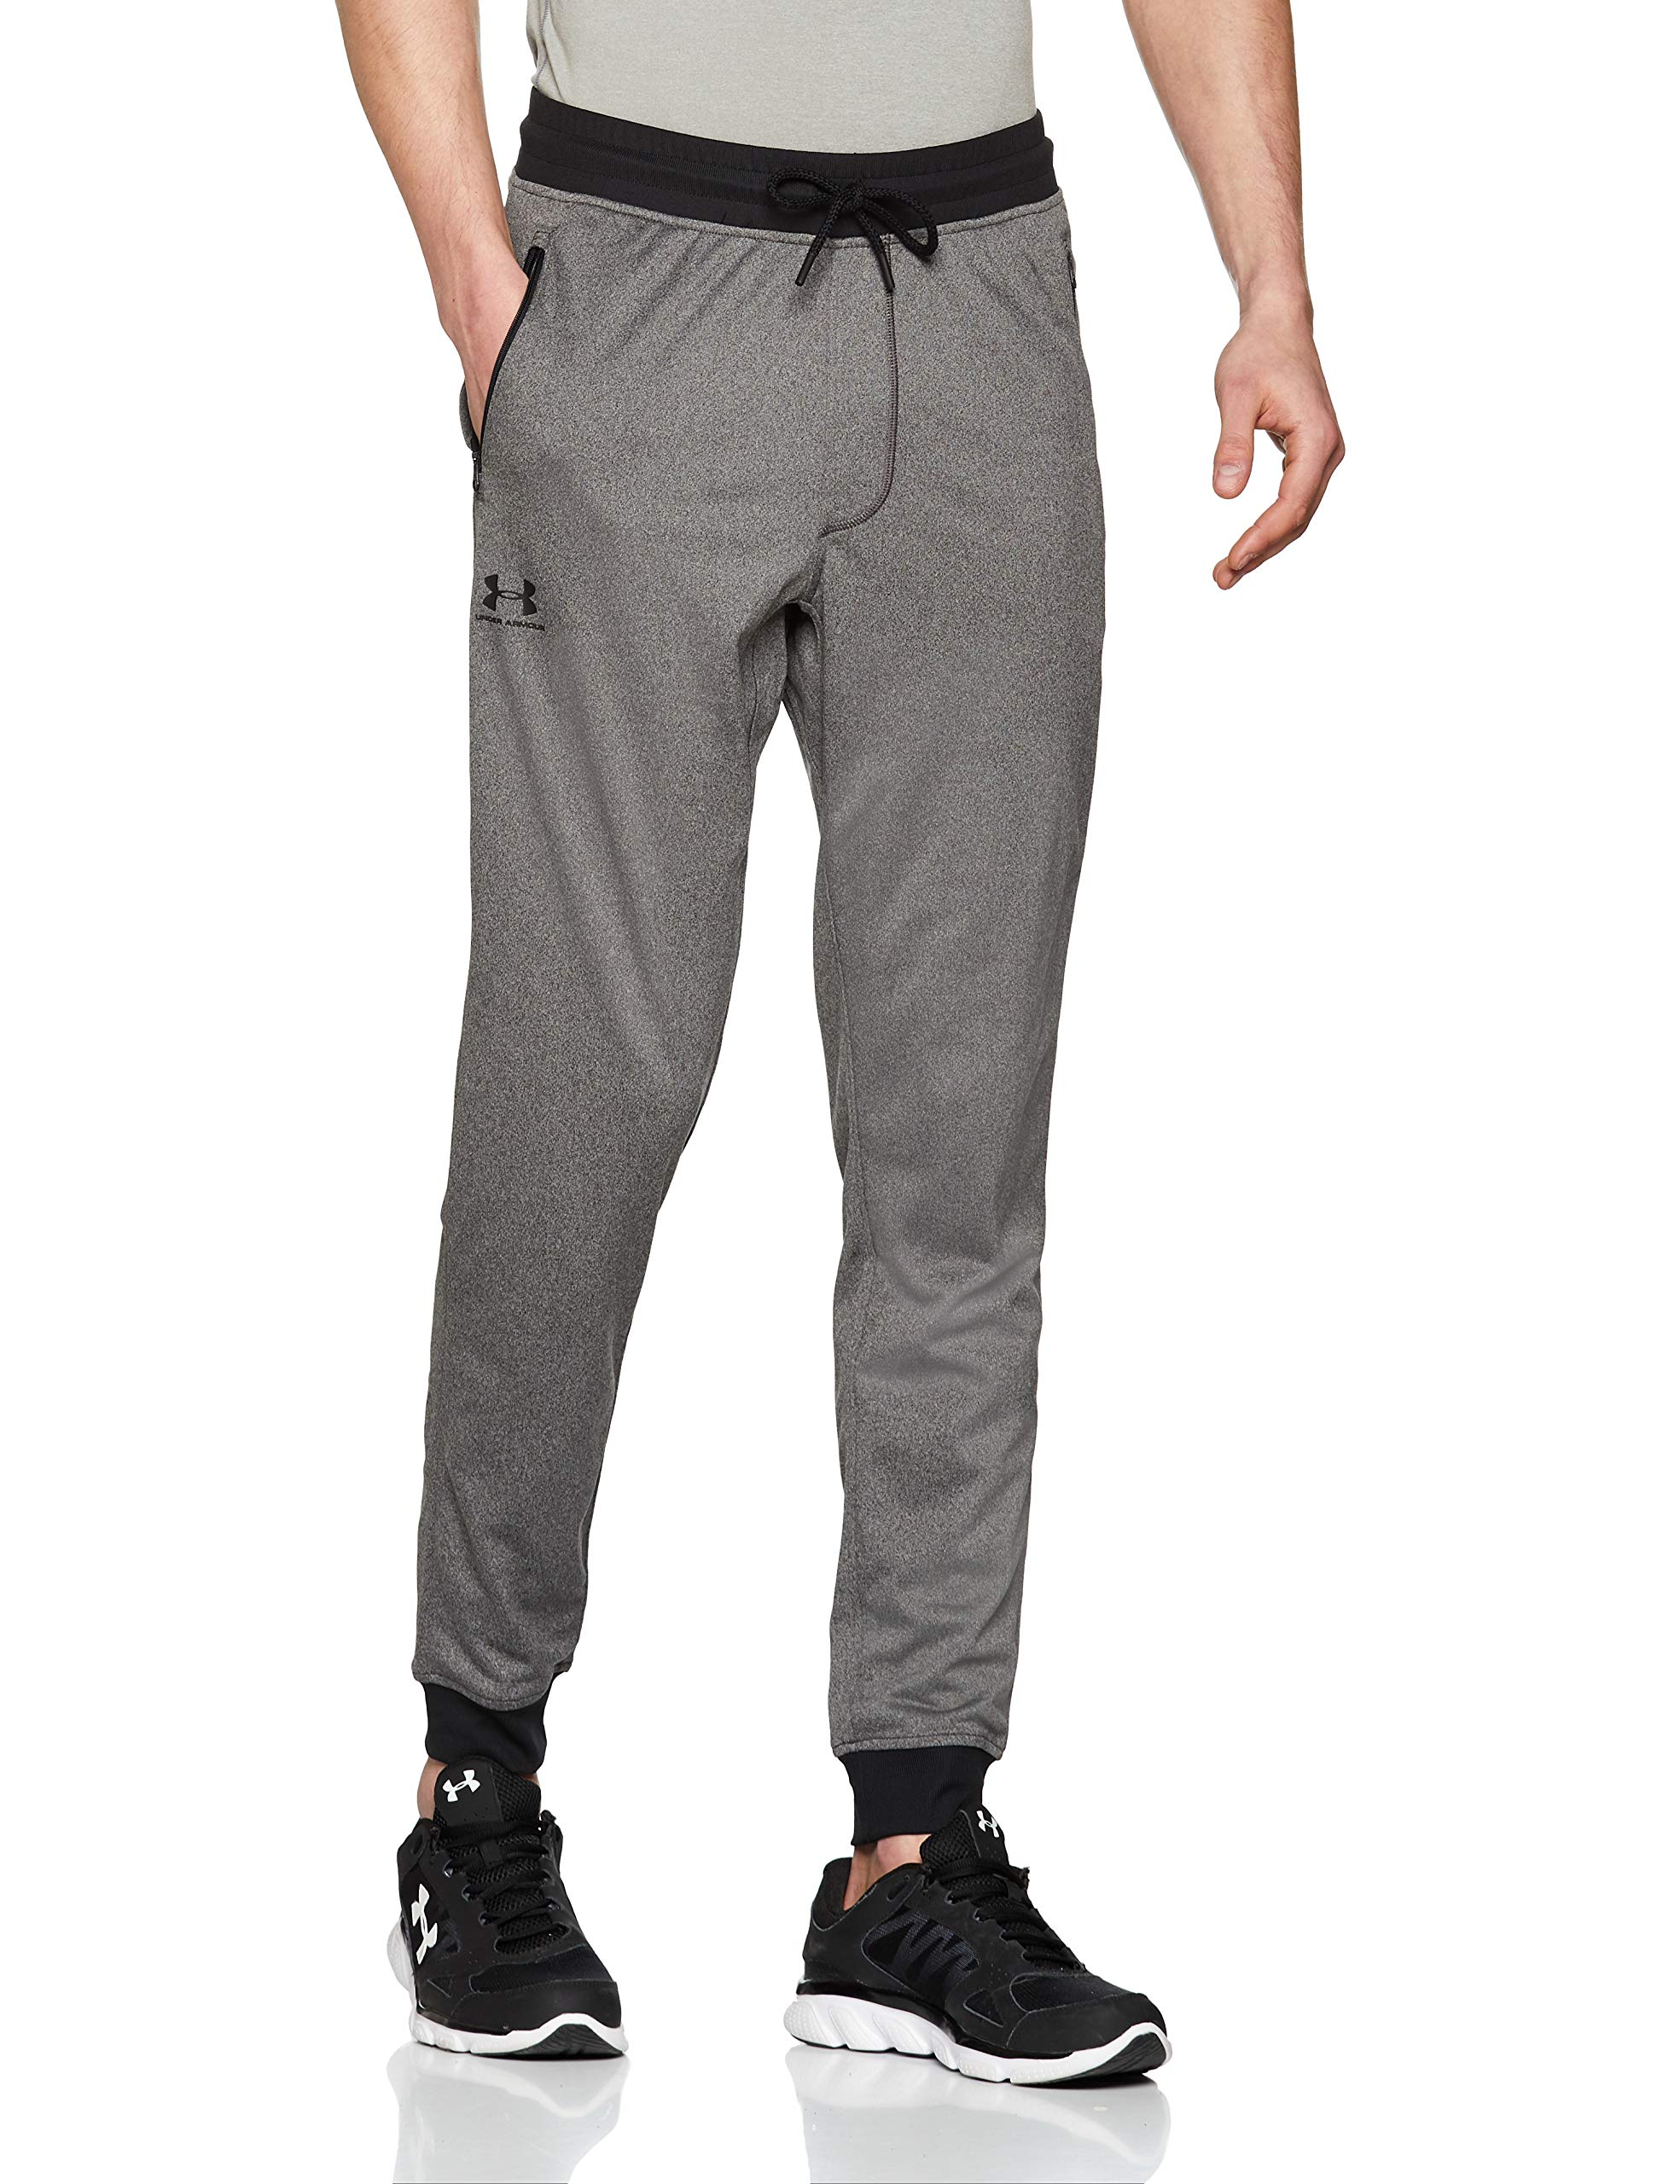 Under Armour Men's Sportstyle Jogger Pants, Carbon Heather /Black, Large by Under Armour